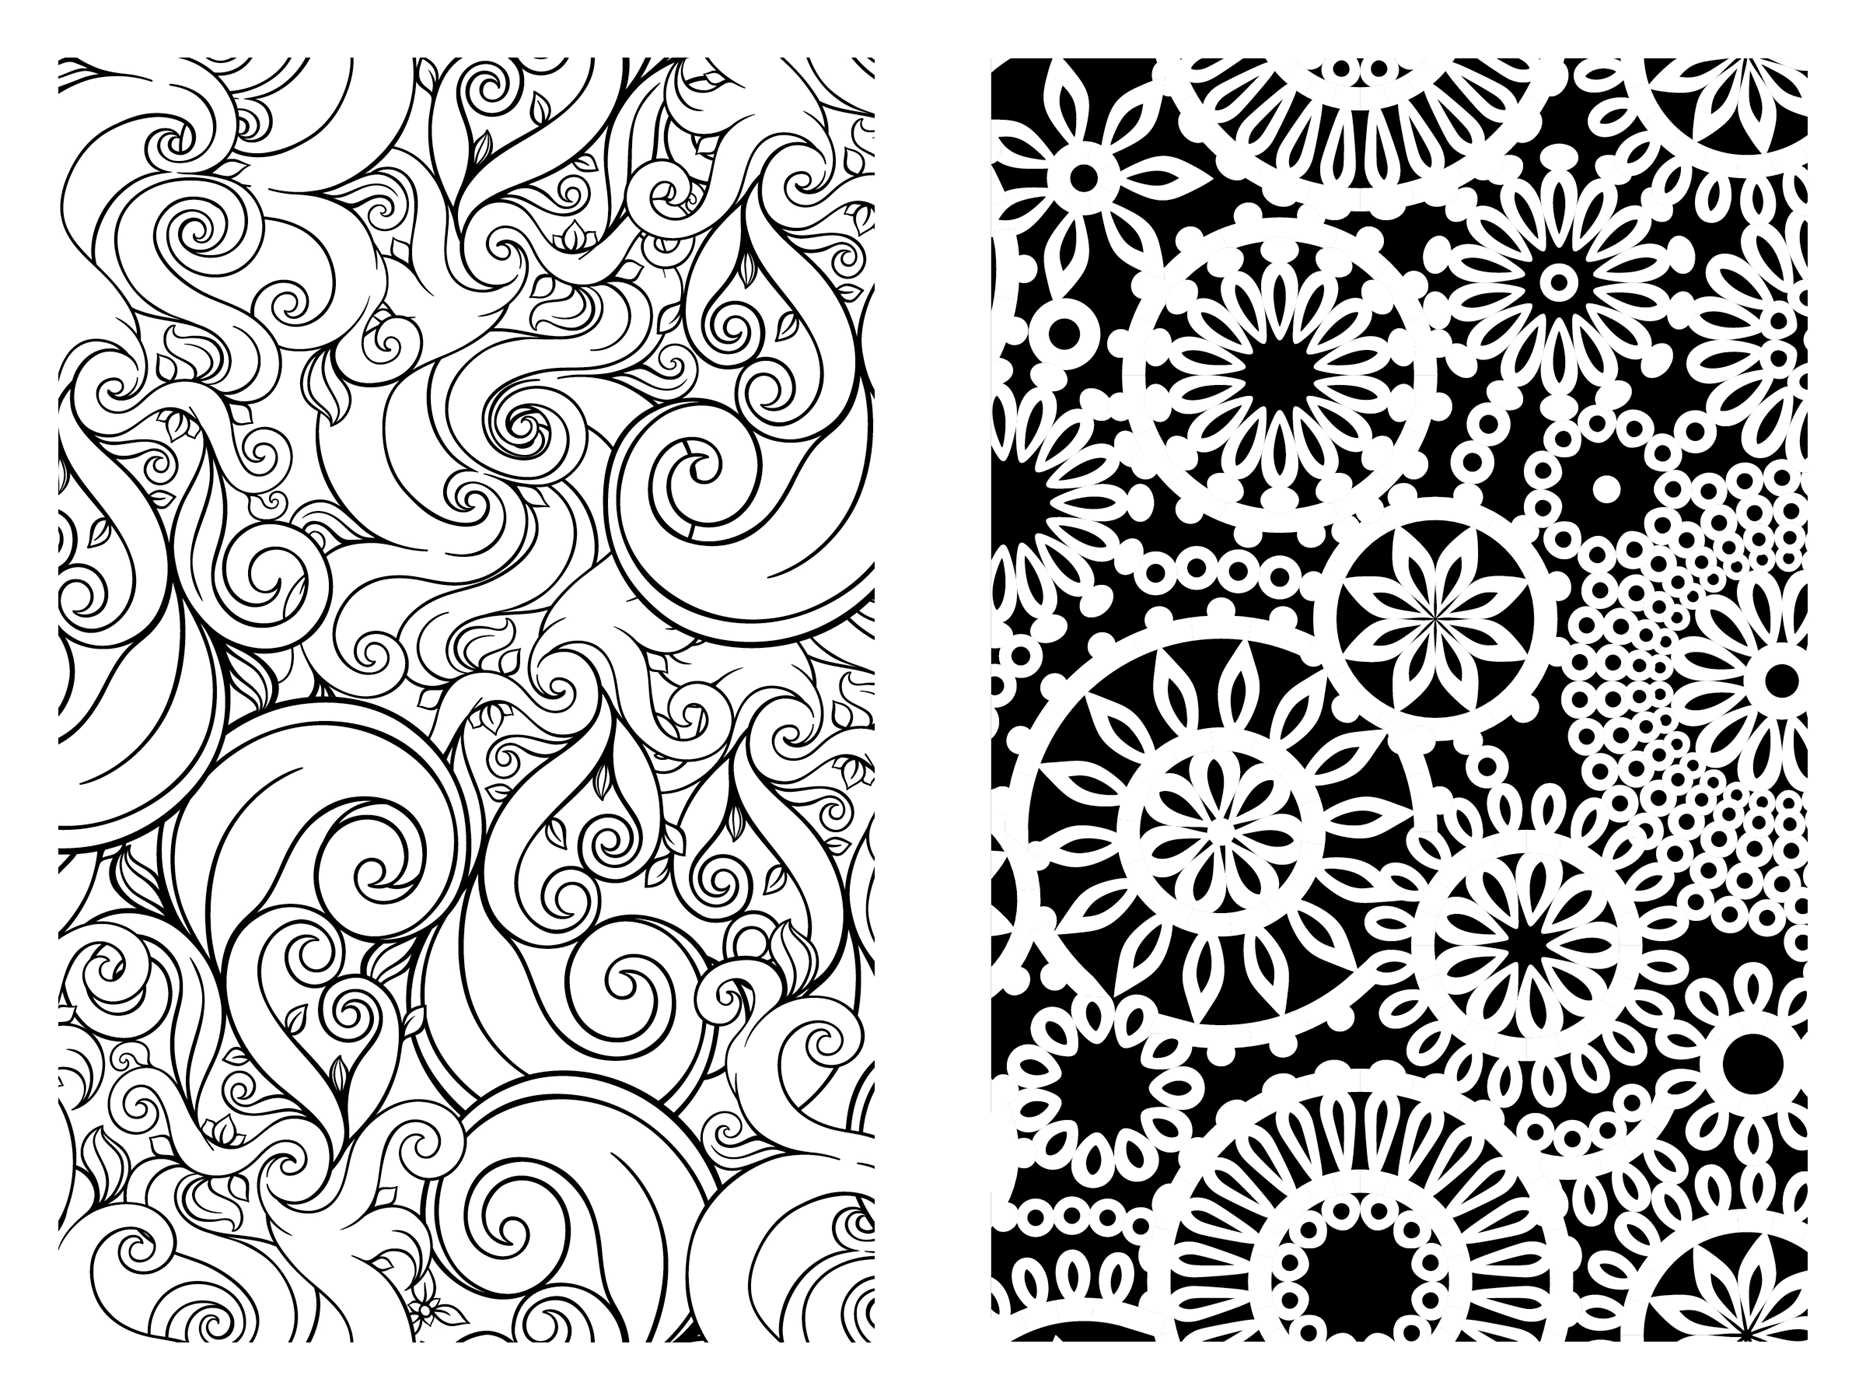 Coloring pages relaxing - Amazon Com Pocket Posh Adult Coloring Book Pretty Designs For Fun Relaxation Pocket Posh Coloring Books 9781449458720 Andrews Mcmeel Publishing